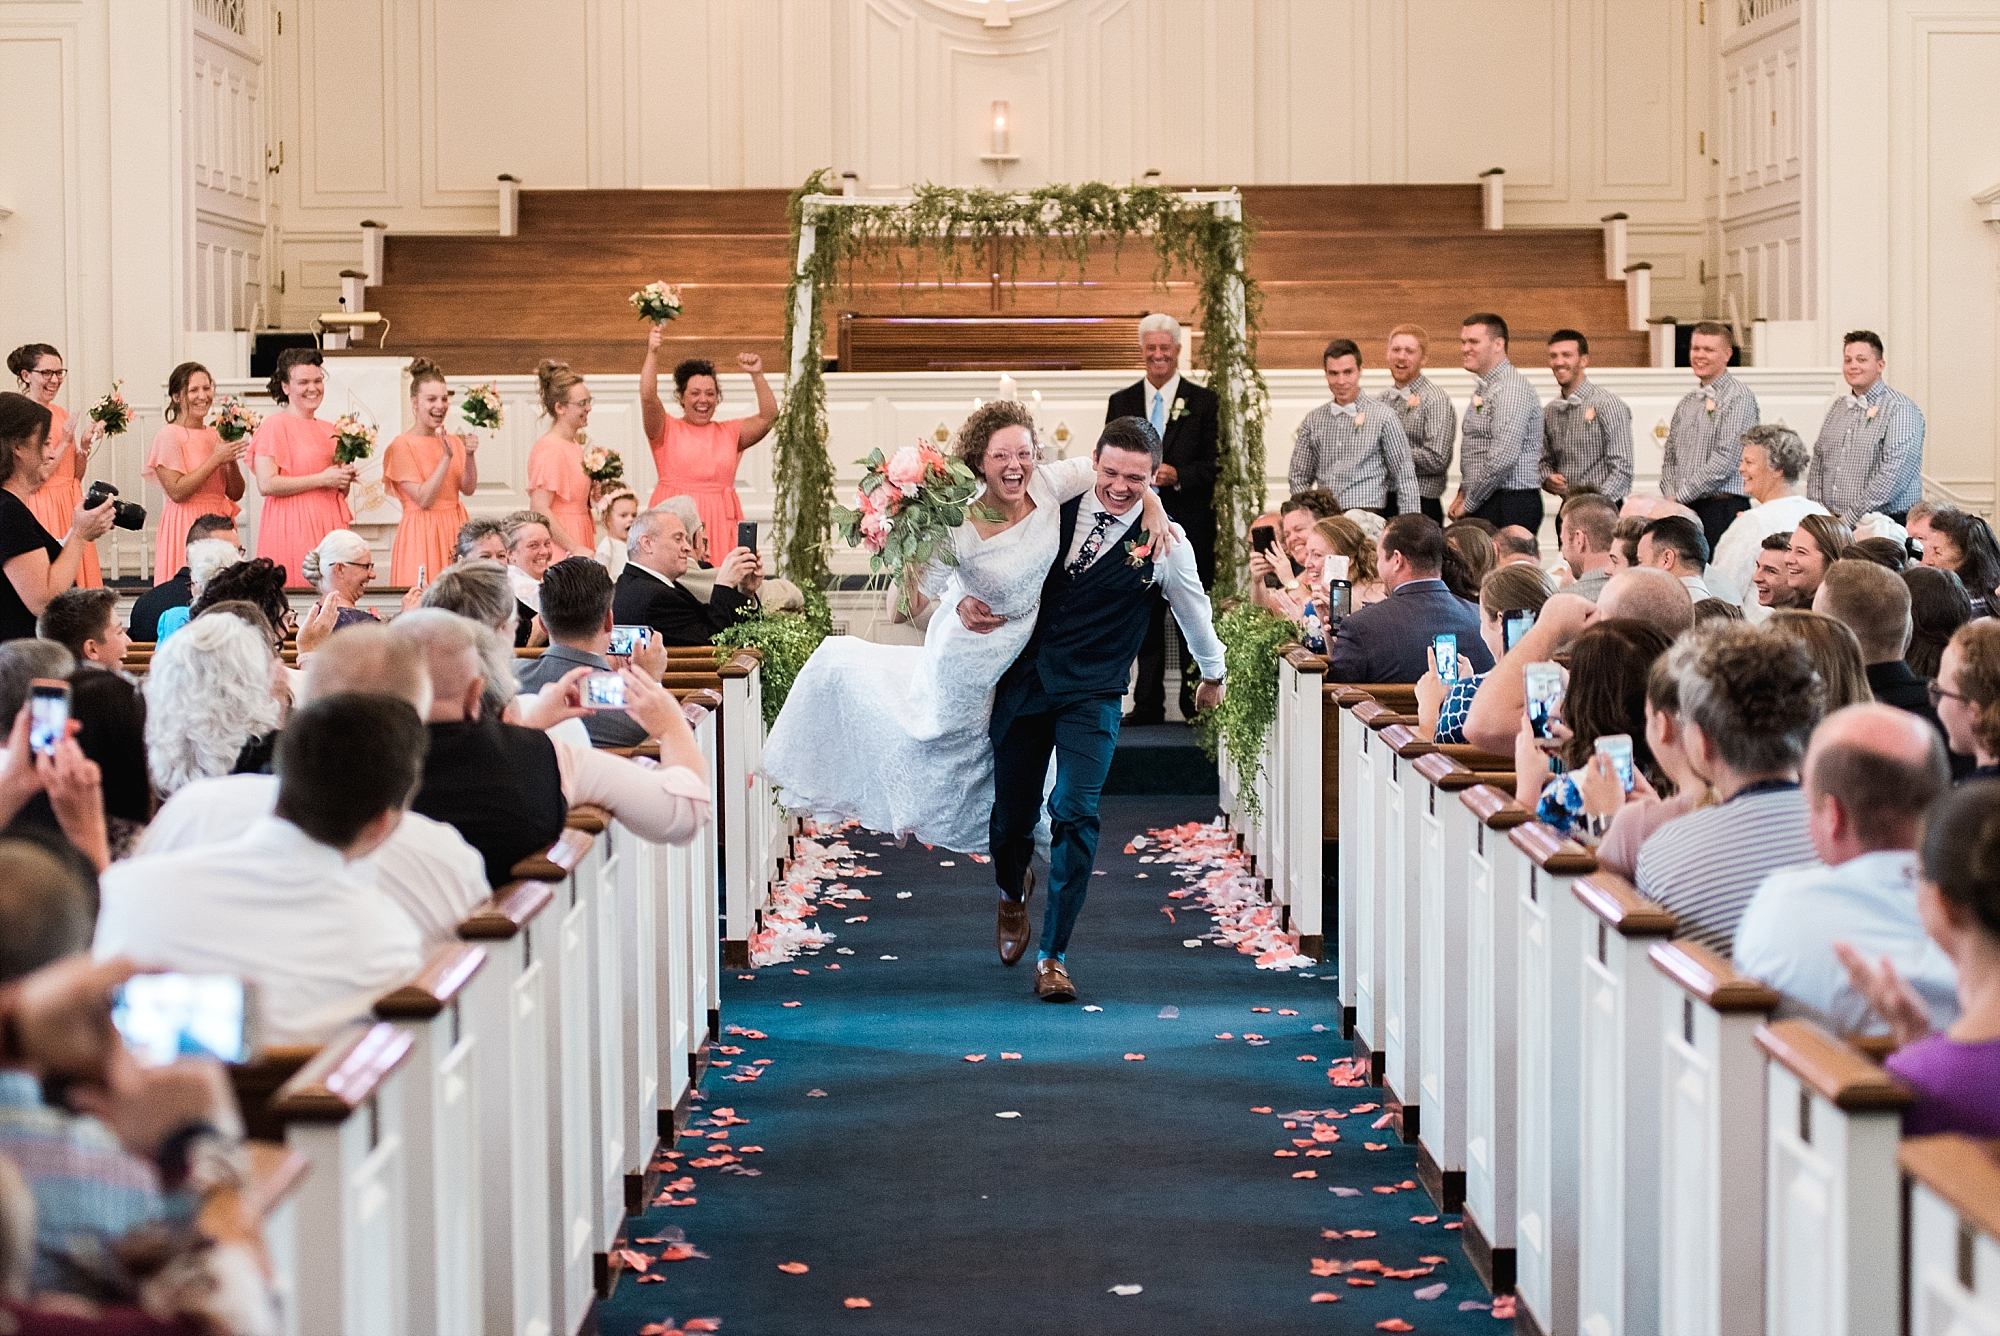 Yes, he picked her up and ran down the aisle with her!